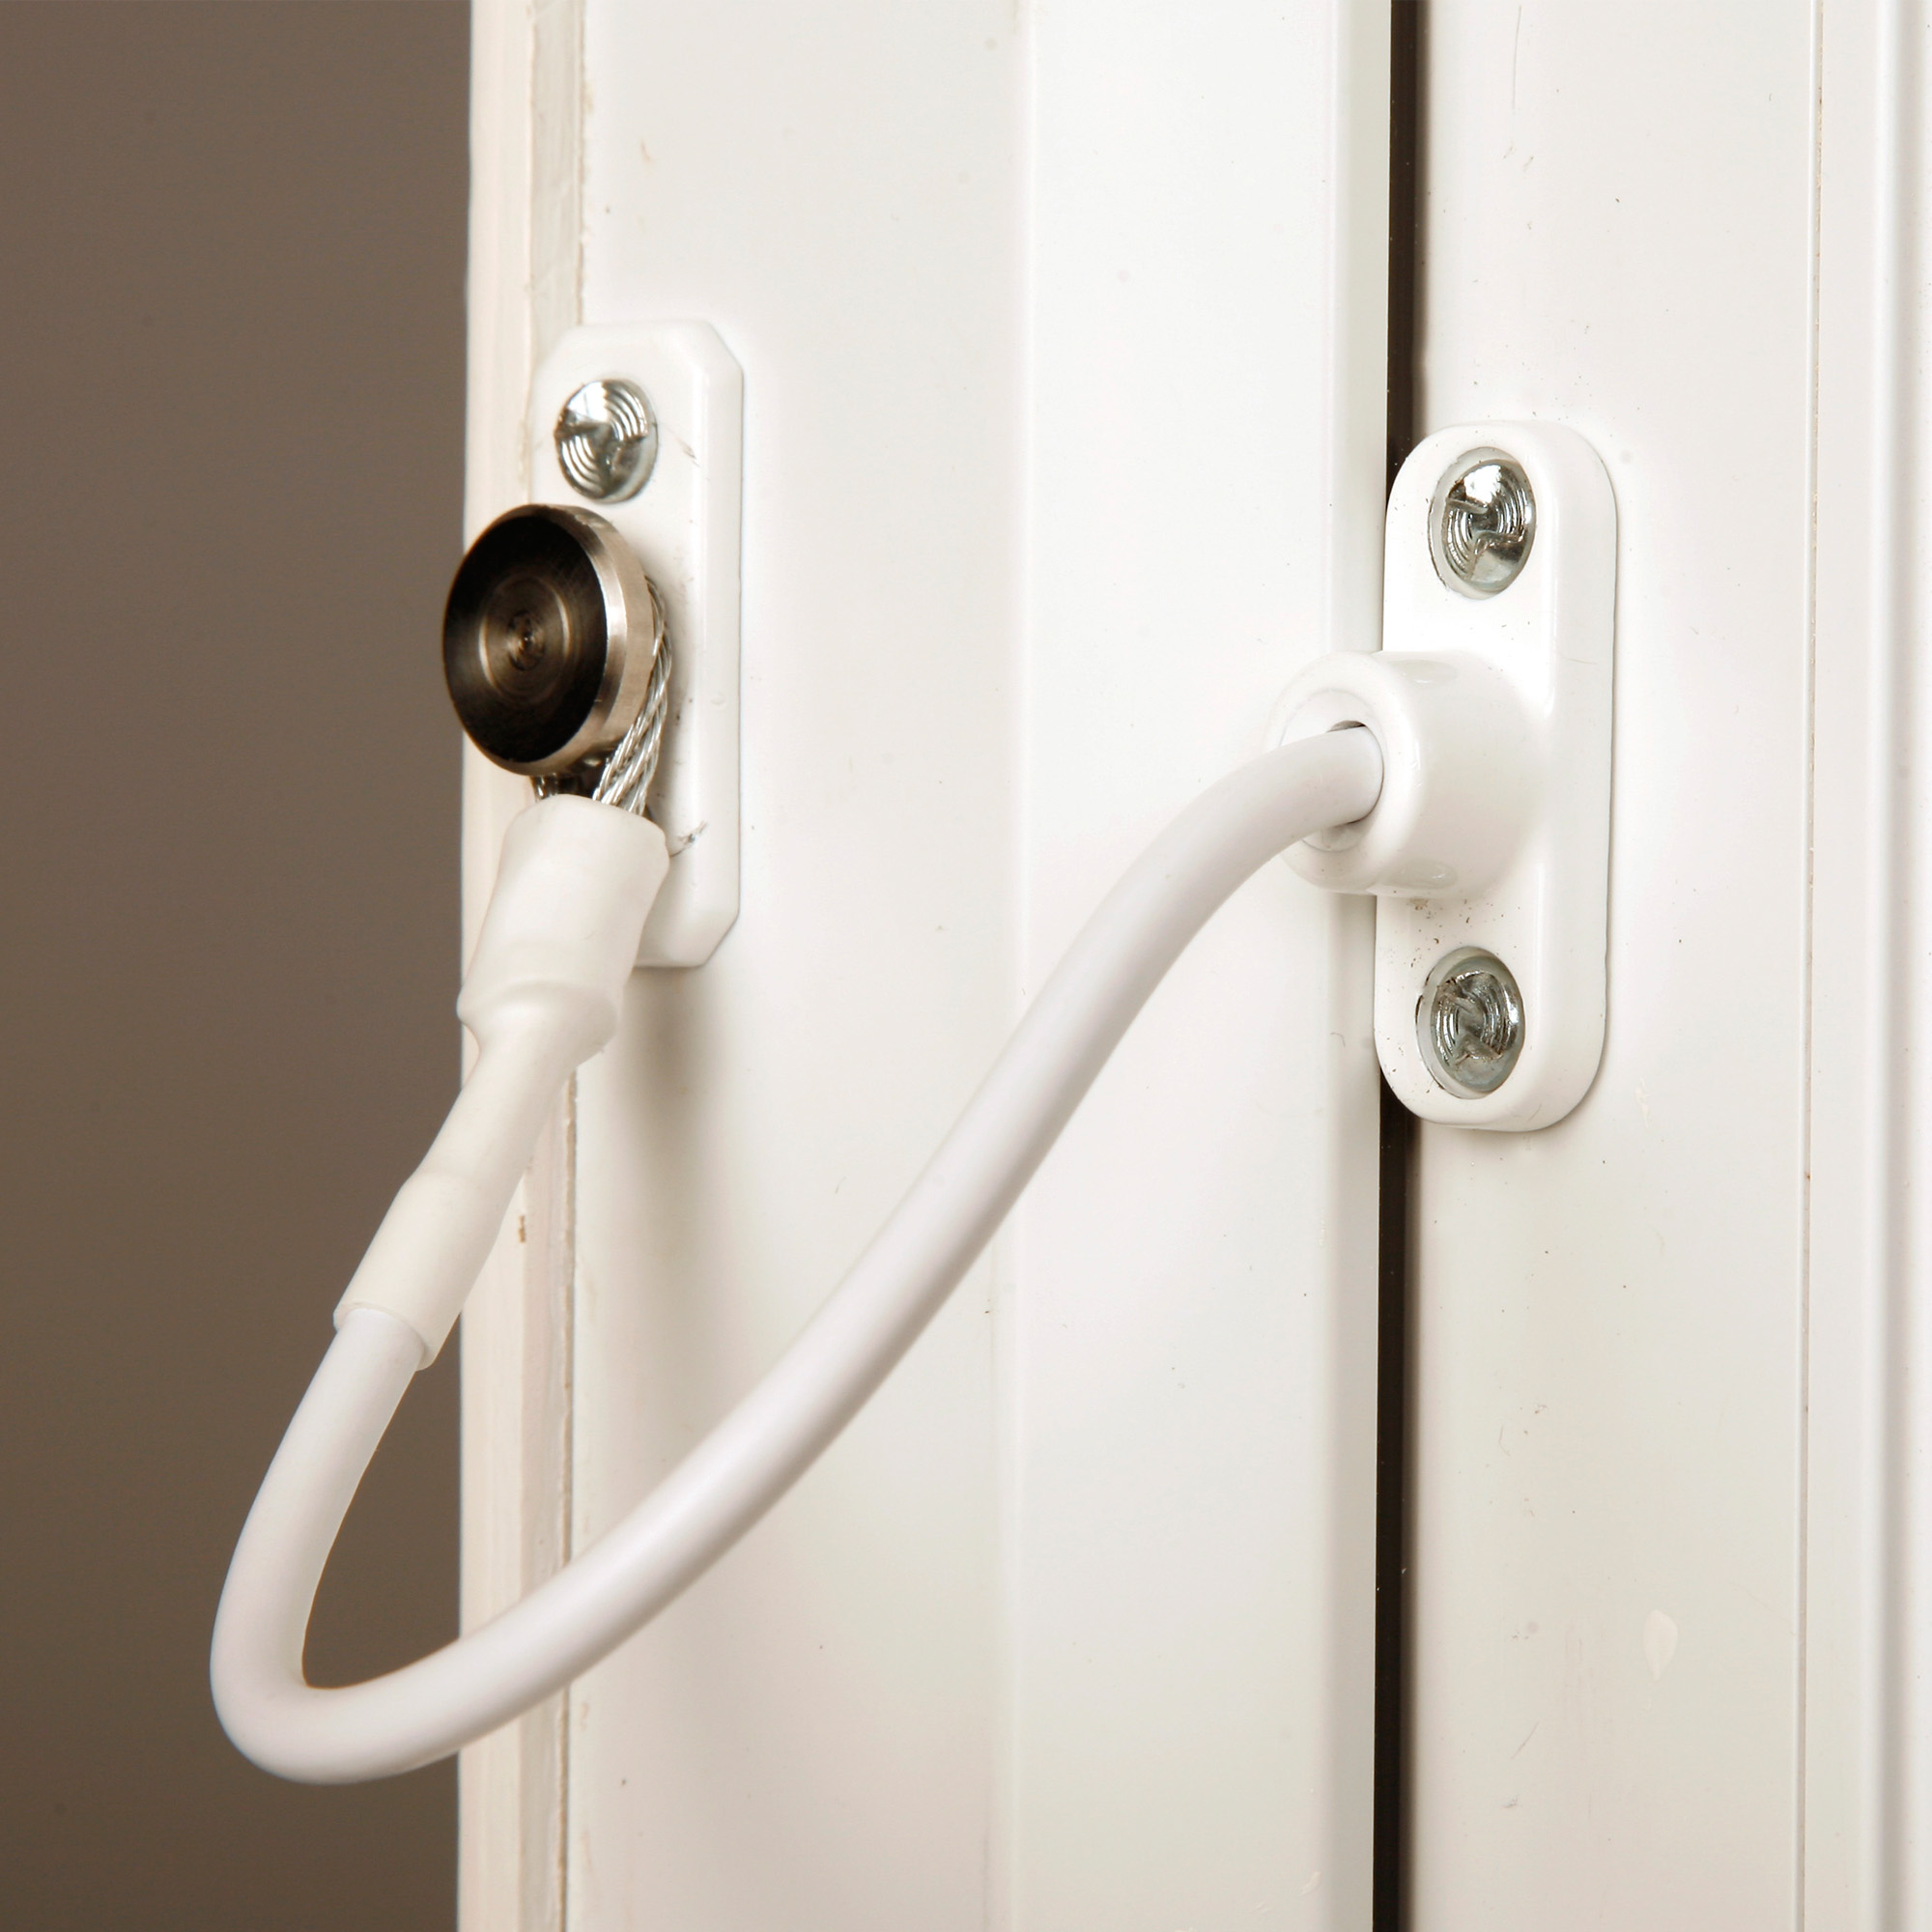 Jackloc Window Cable Door Child Safety Security Restrictor White 200m Steel Cord